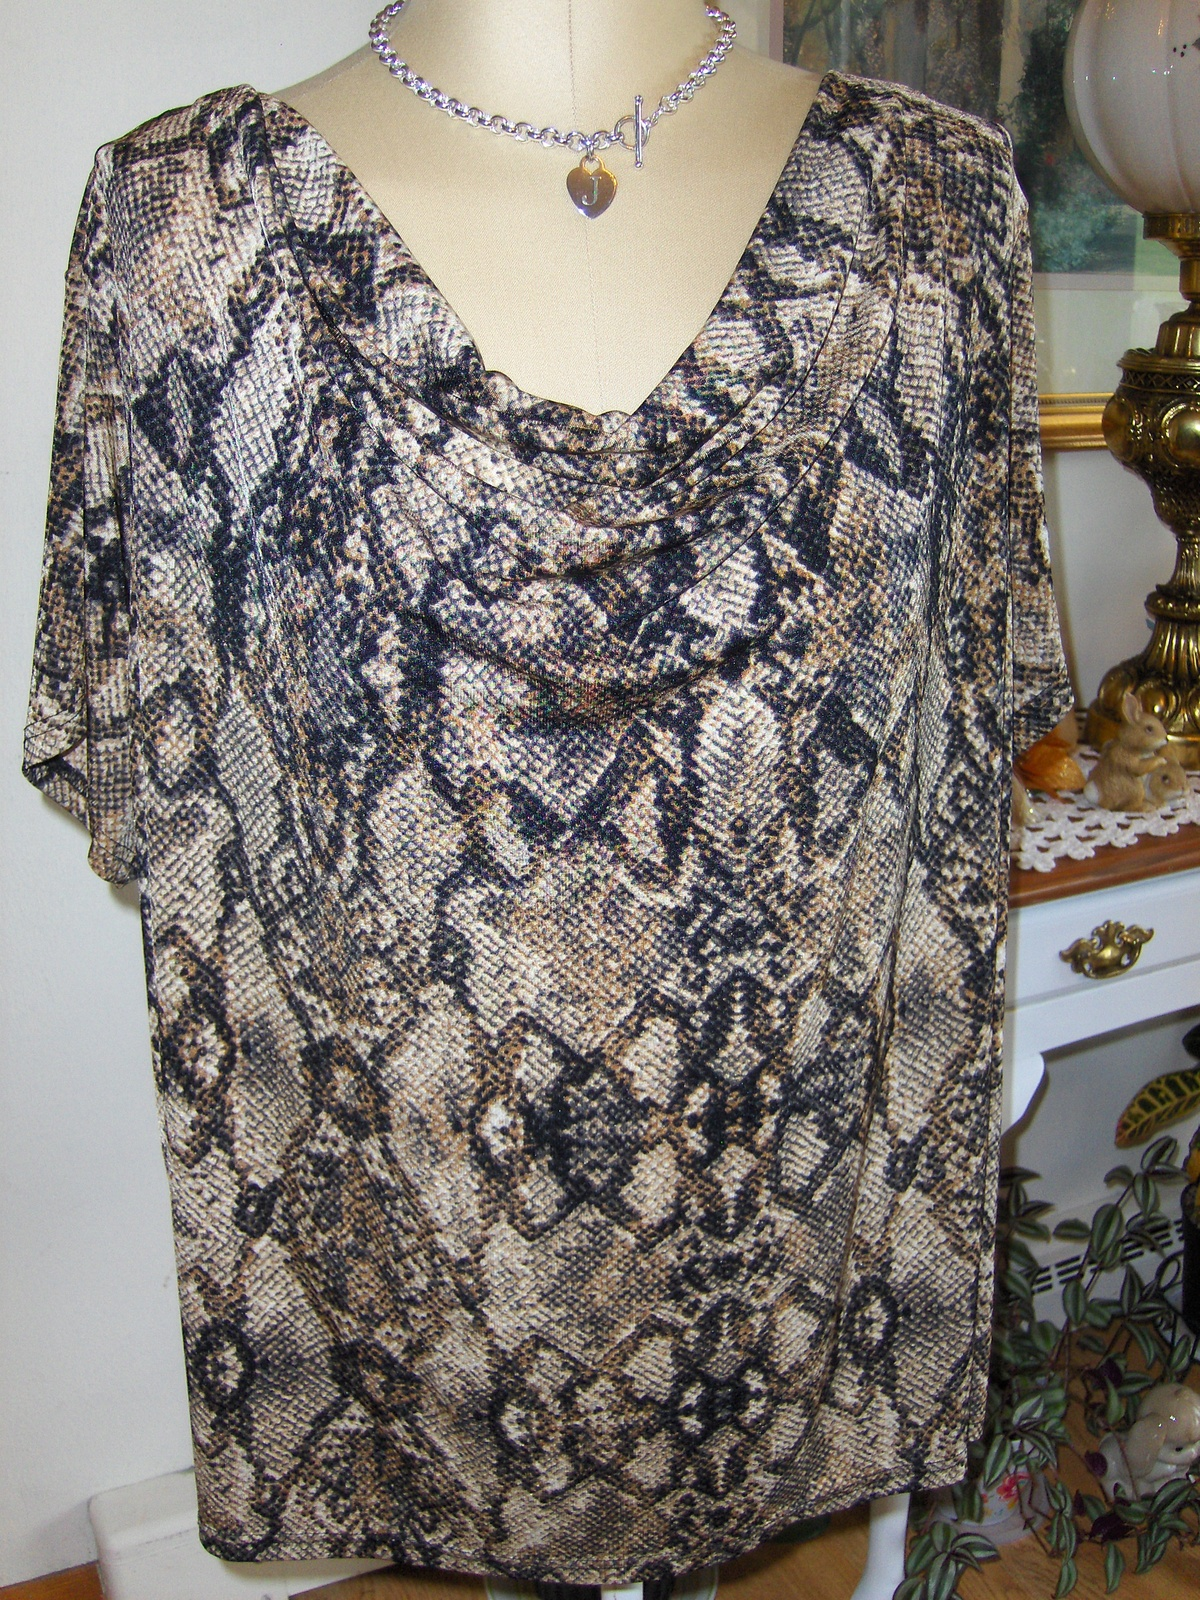 dbb6890f8c44f Jaclyn Smith Animal Print Top Cowl Neck and 31 similar items